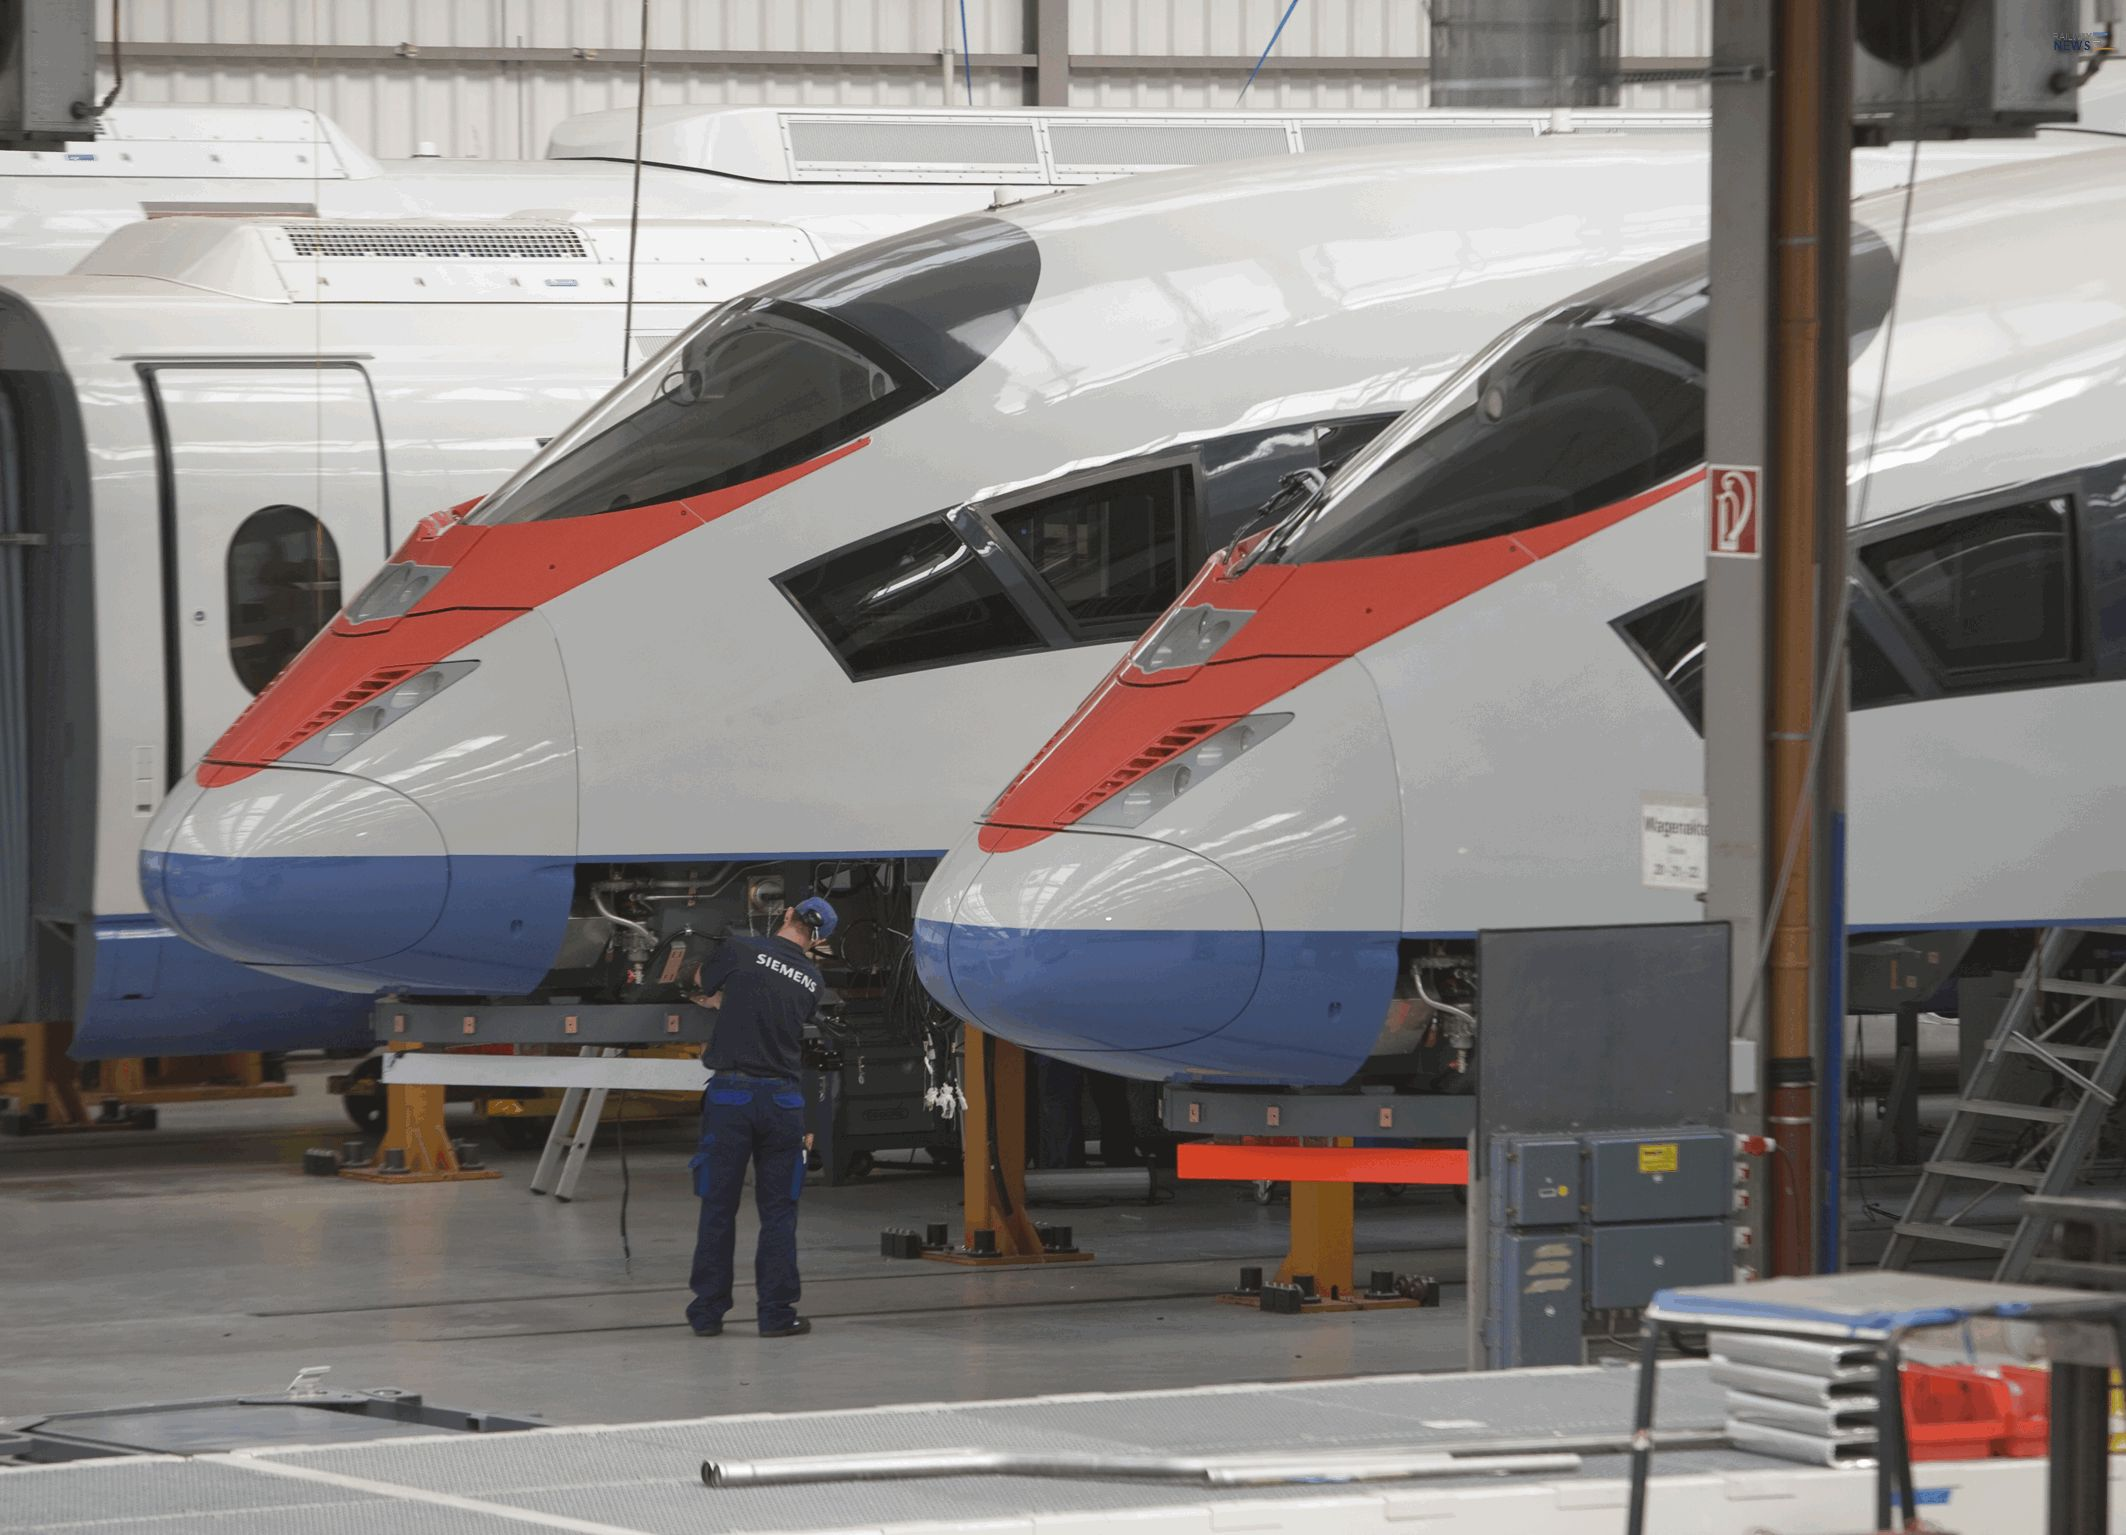 Italians to Take Part in Moscow-Kazan High-Speed Railway Project